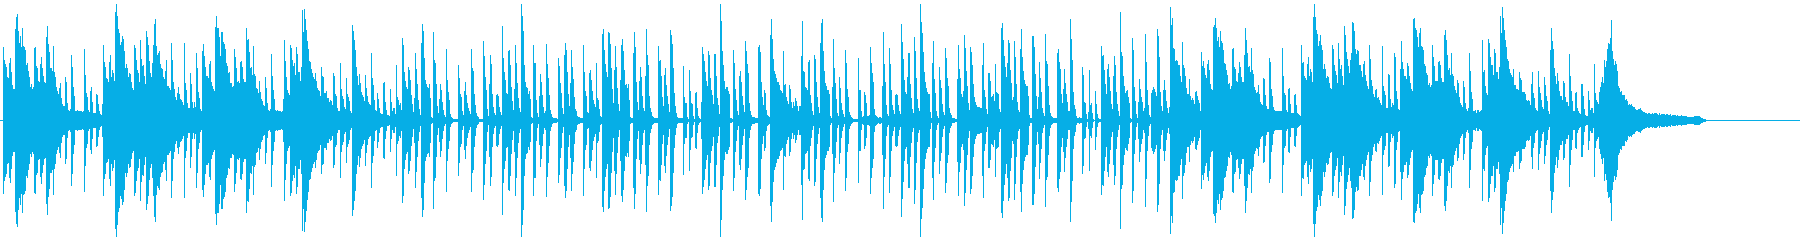 Daily BGM with a loose atmosphere's reproduced waveform